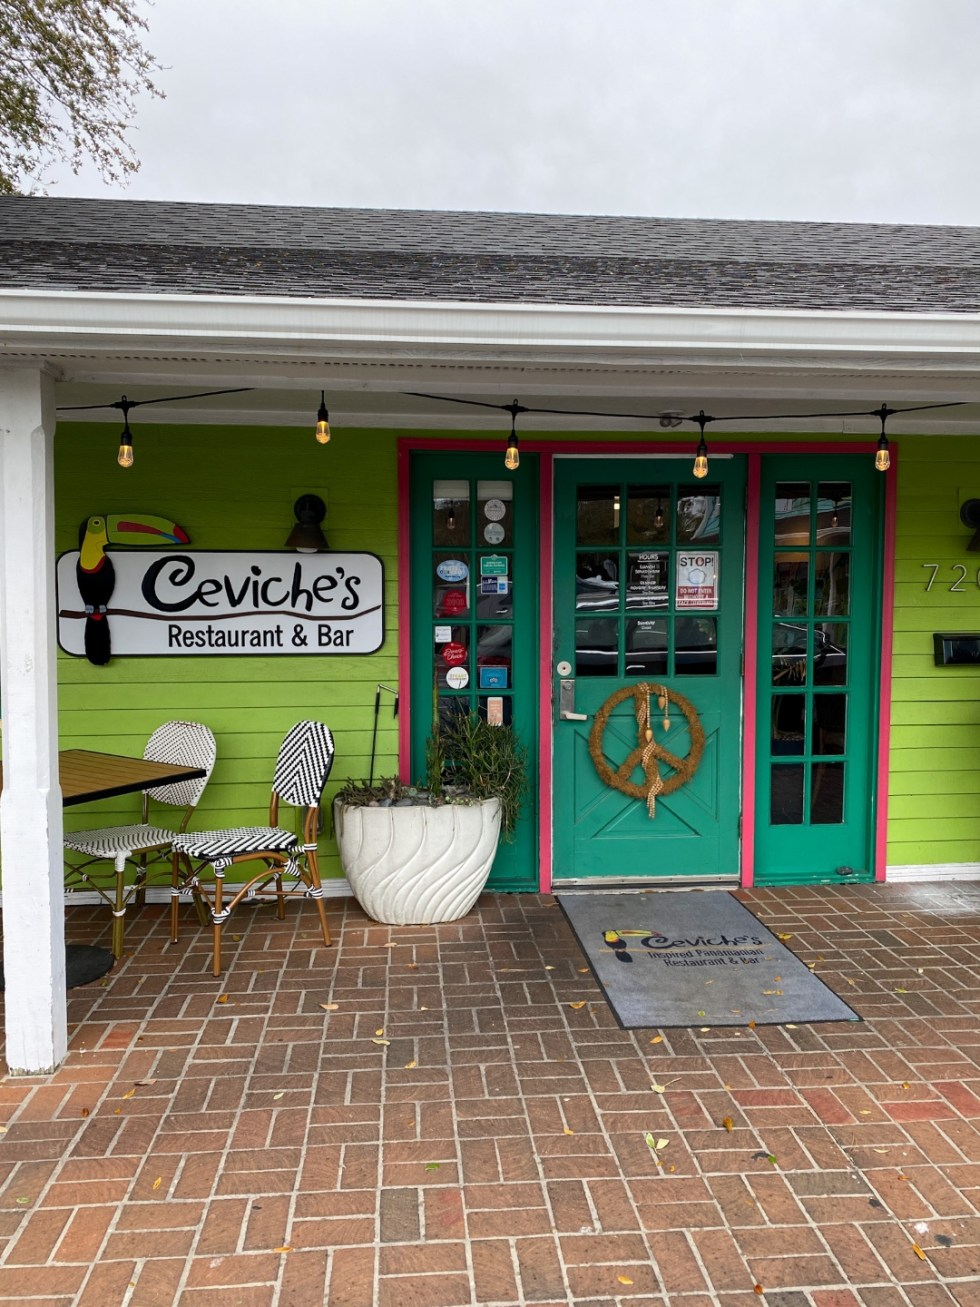 A Spring Weekend in Wilmington, NC: the Best Things to Do - I'm Fixin' To - @imfixintoblog |Weekend in Wilmington by popular NC travel blog, I'm Fixin' To: image of Ceviche's restaurant and bar.